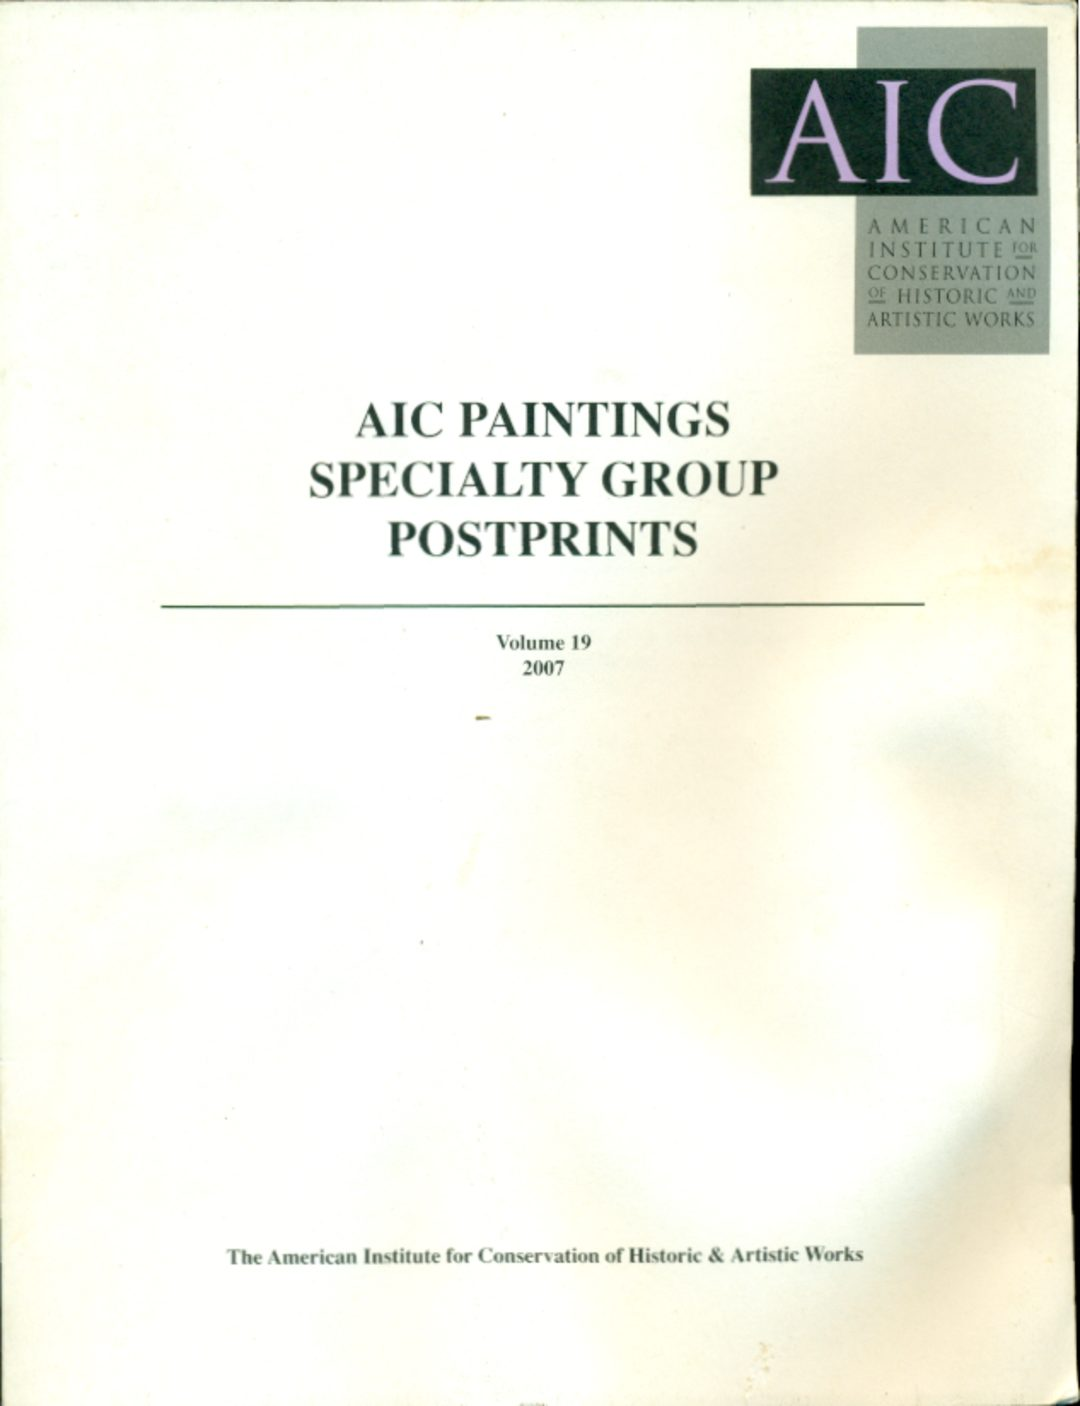 https://cbccoop.it/app/uploads/2017/06/COP-AIC-Postprints-Fen.-Deter.-pdf.jpg